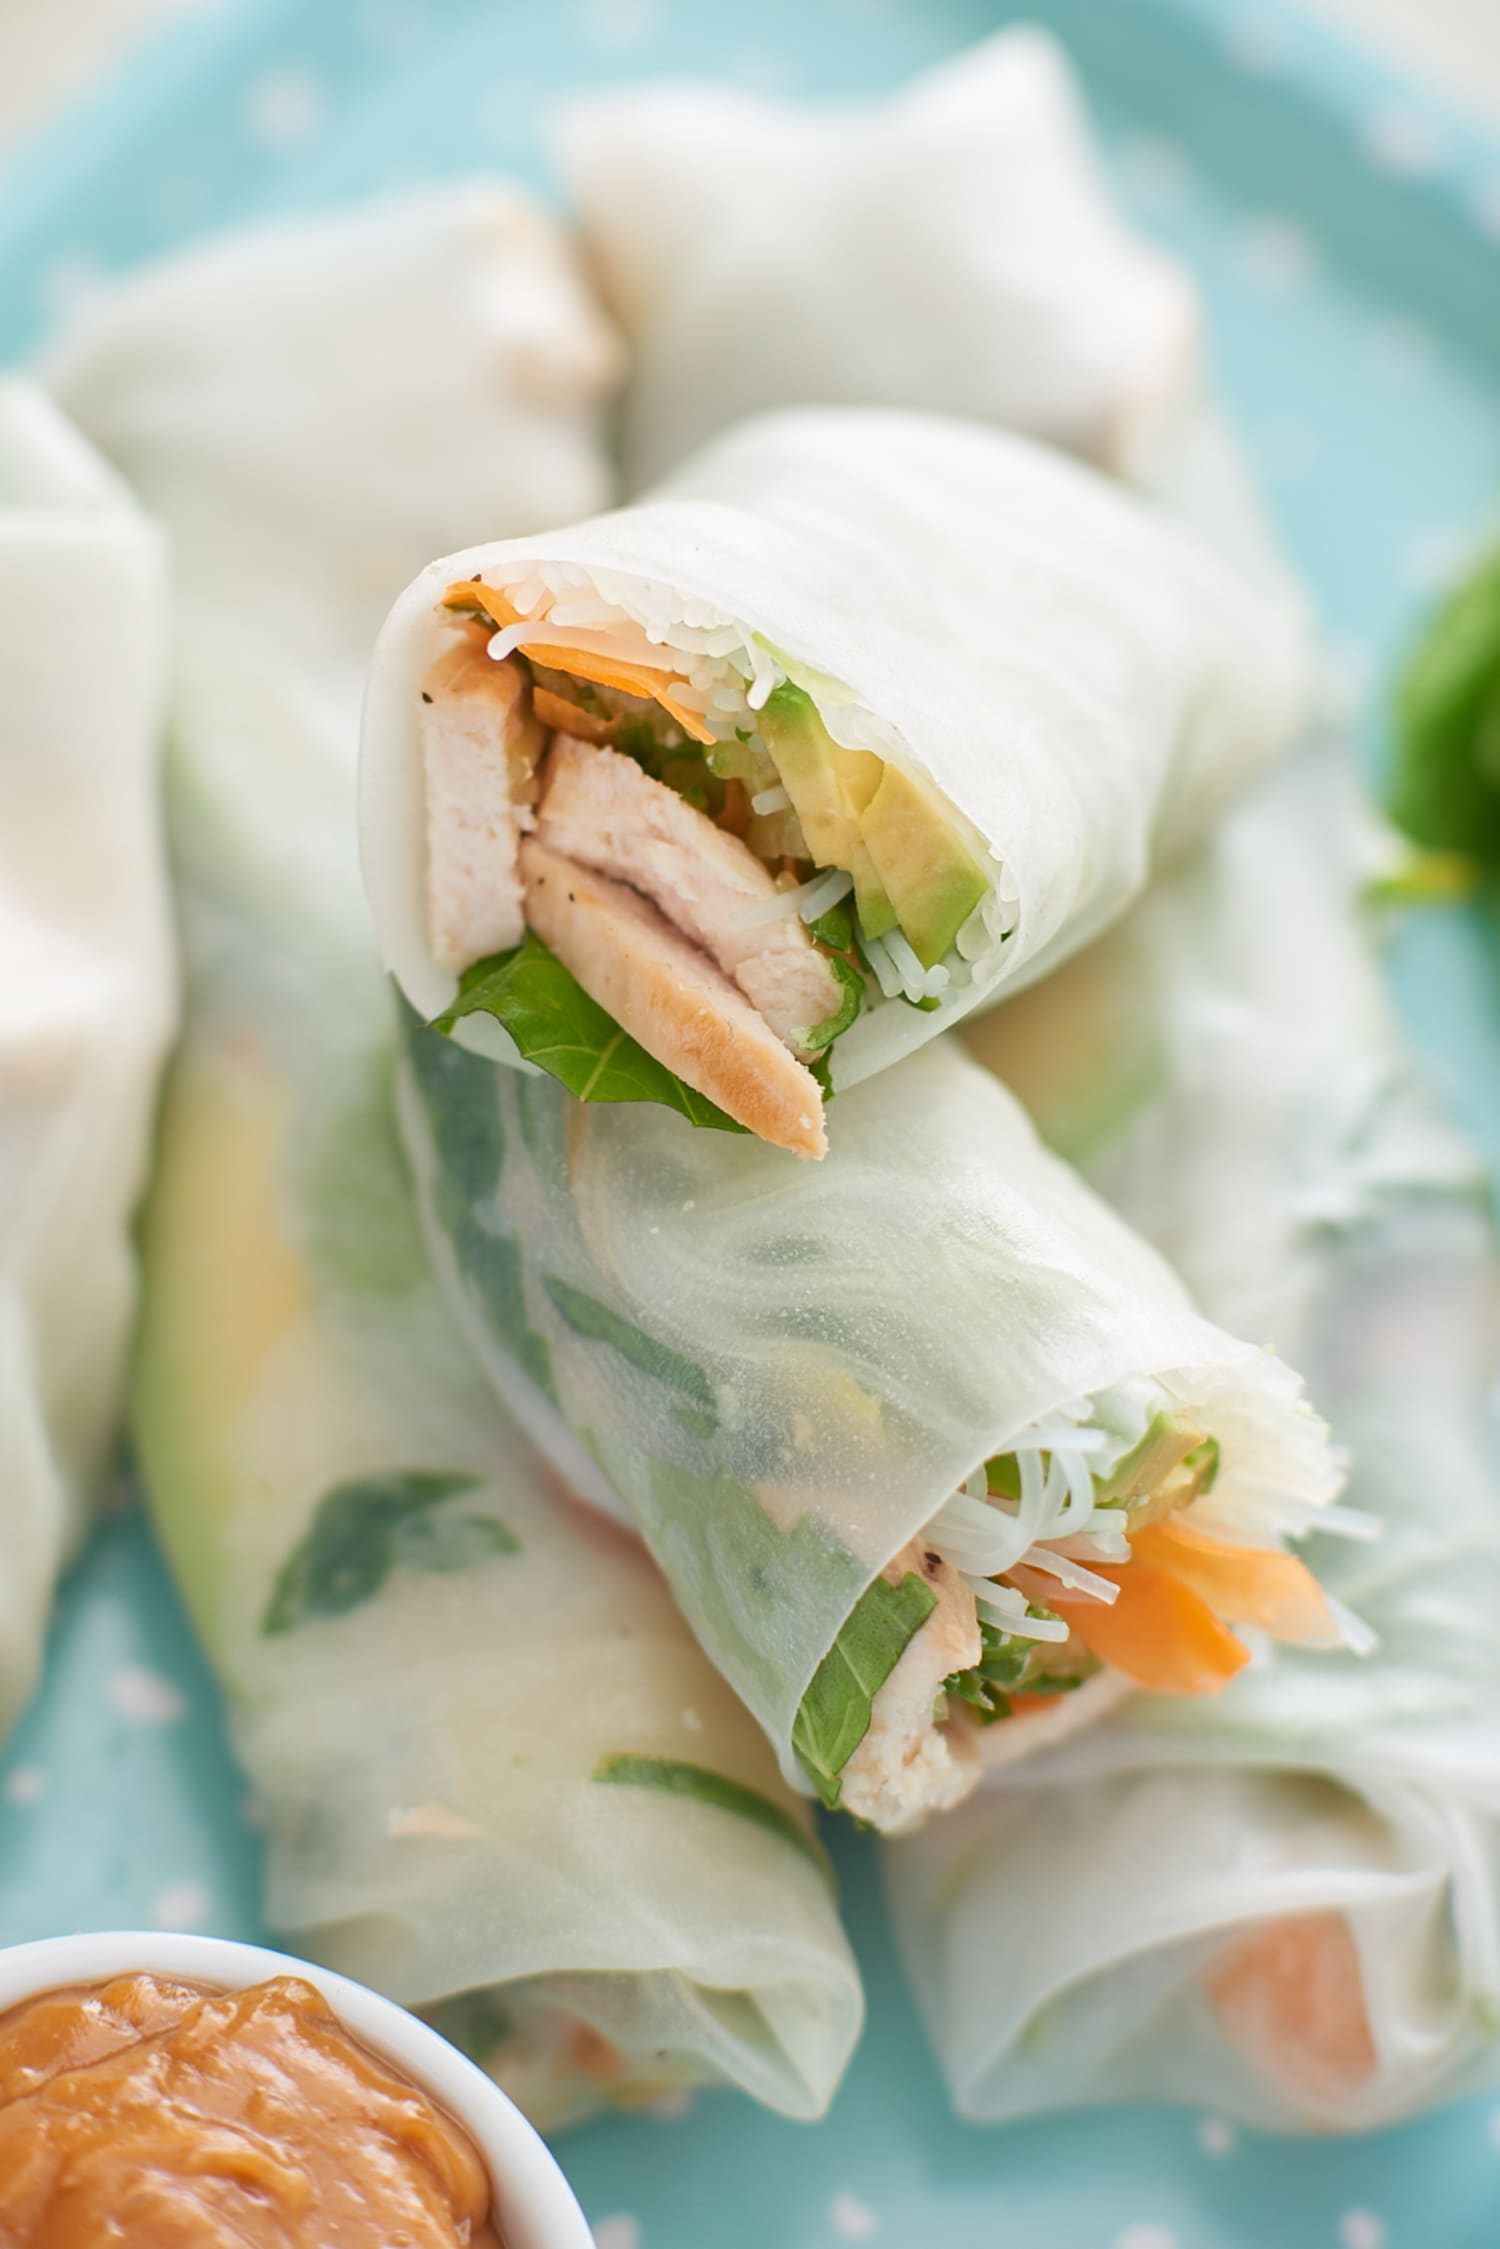 Recipe: Chicken Summer Rolls with Peanut Dipping Sauce